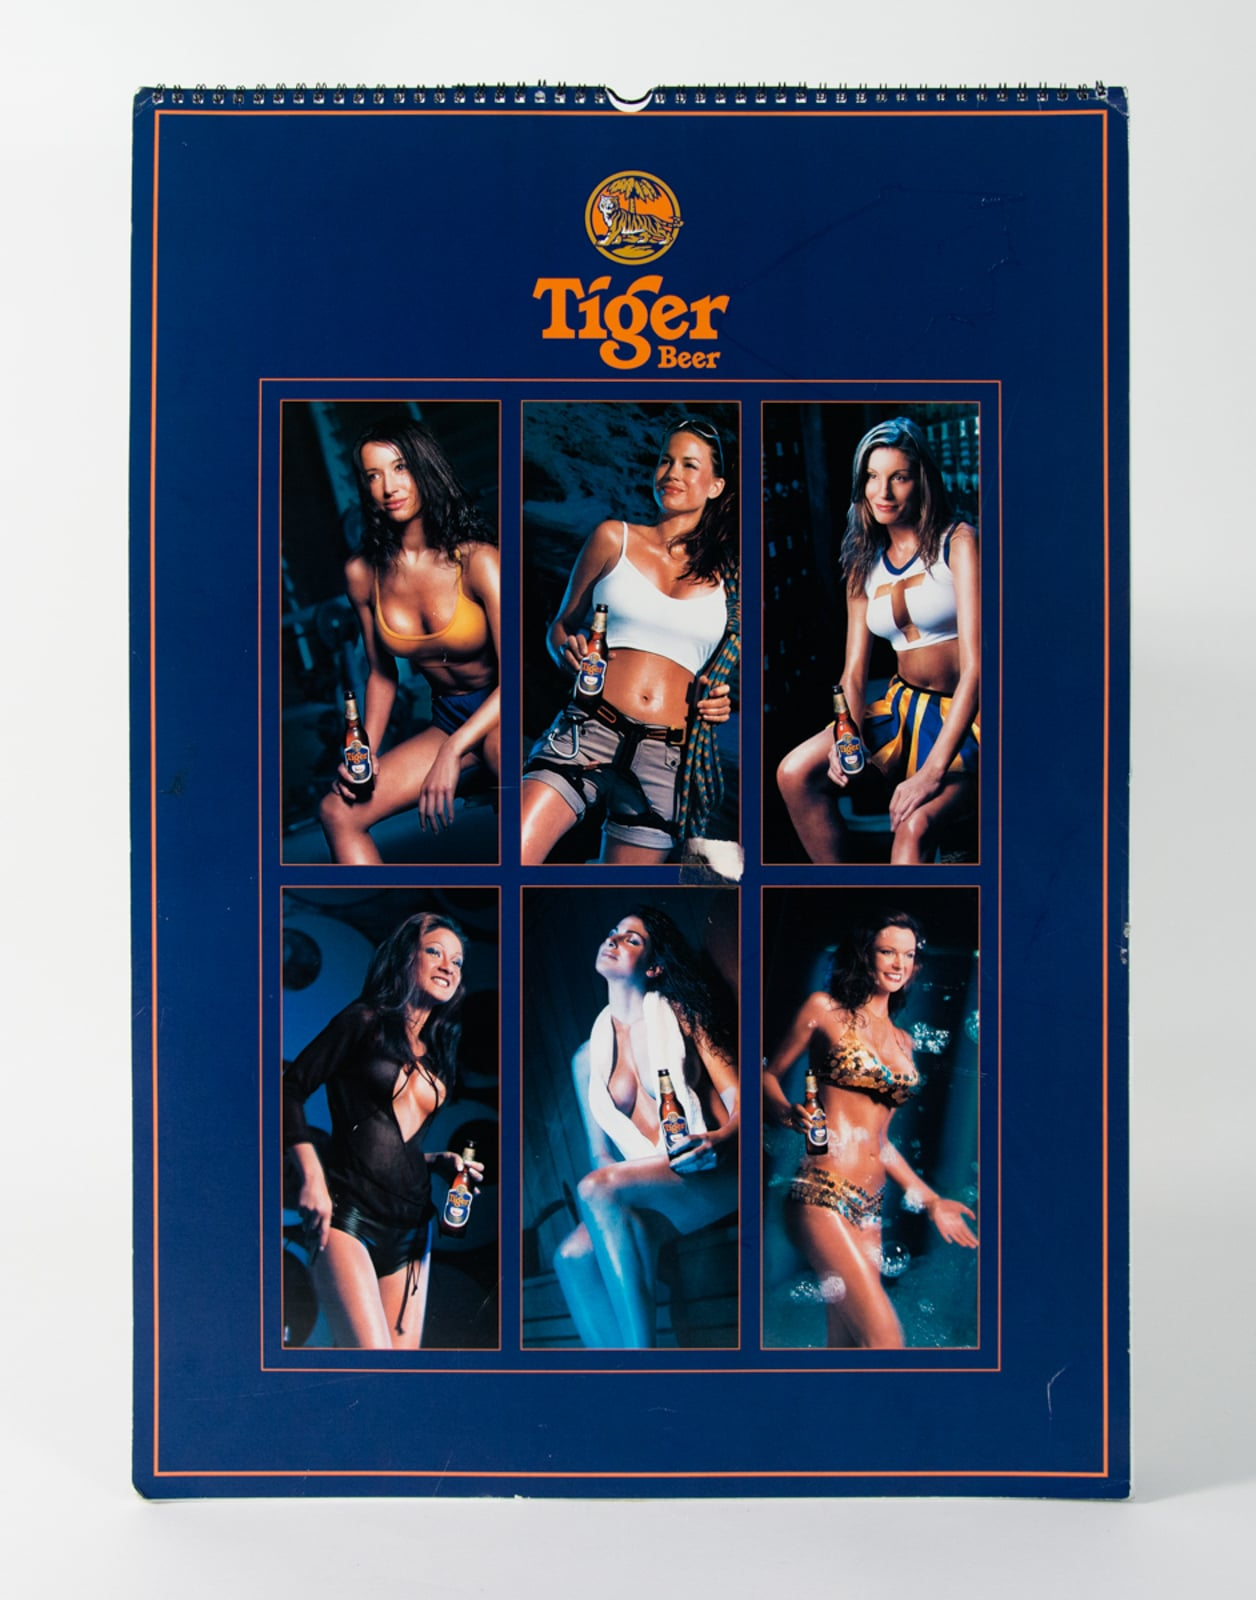 2001 Tiger Beer Calendar with pictures of six pin-up girls